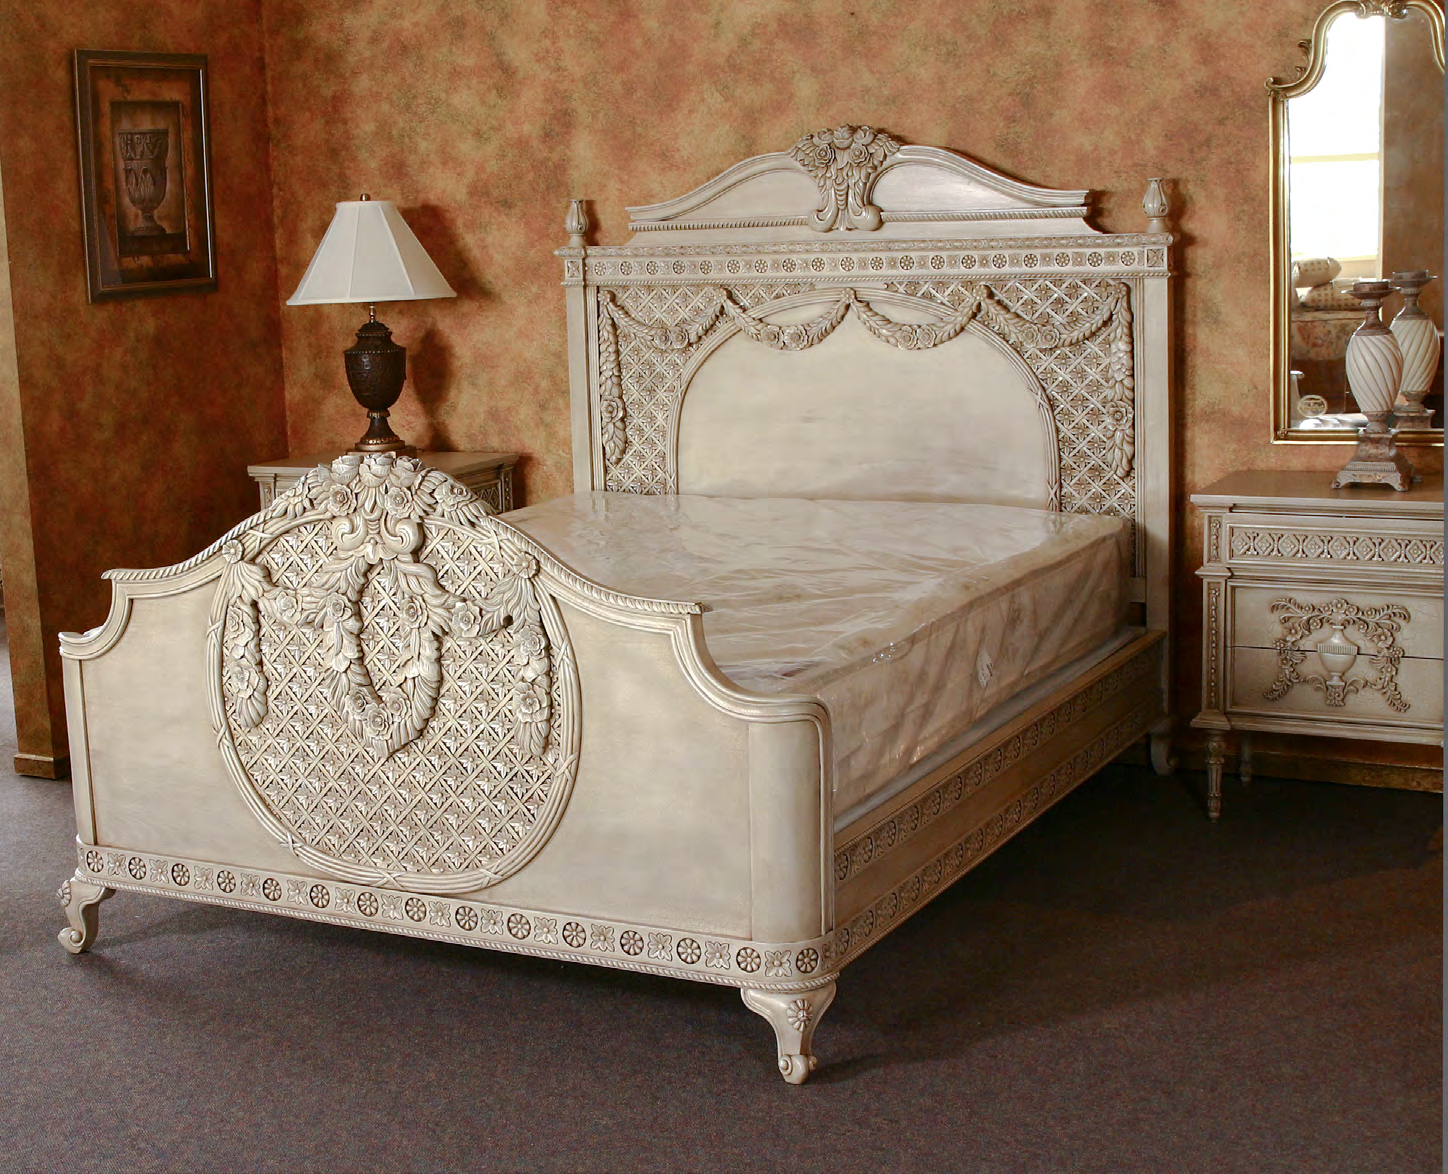 B110 - Carved French Bed